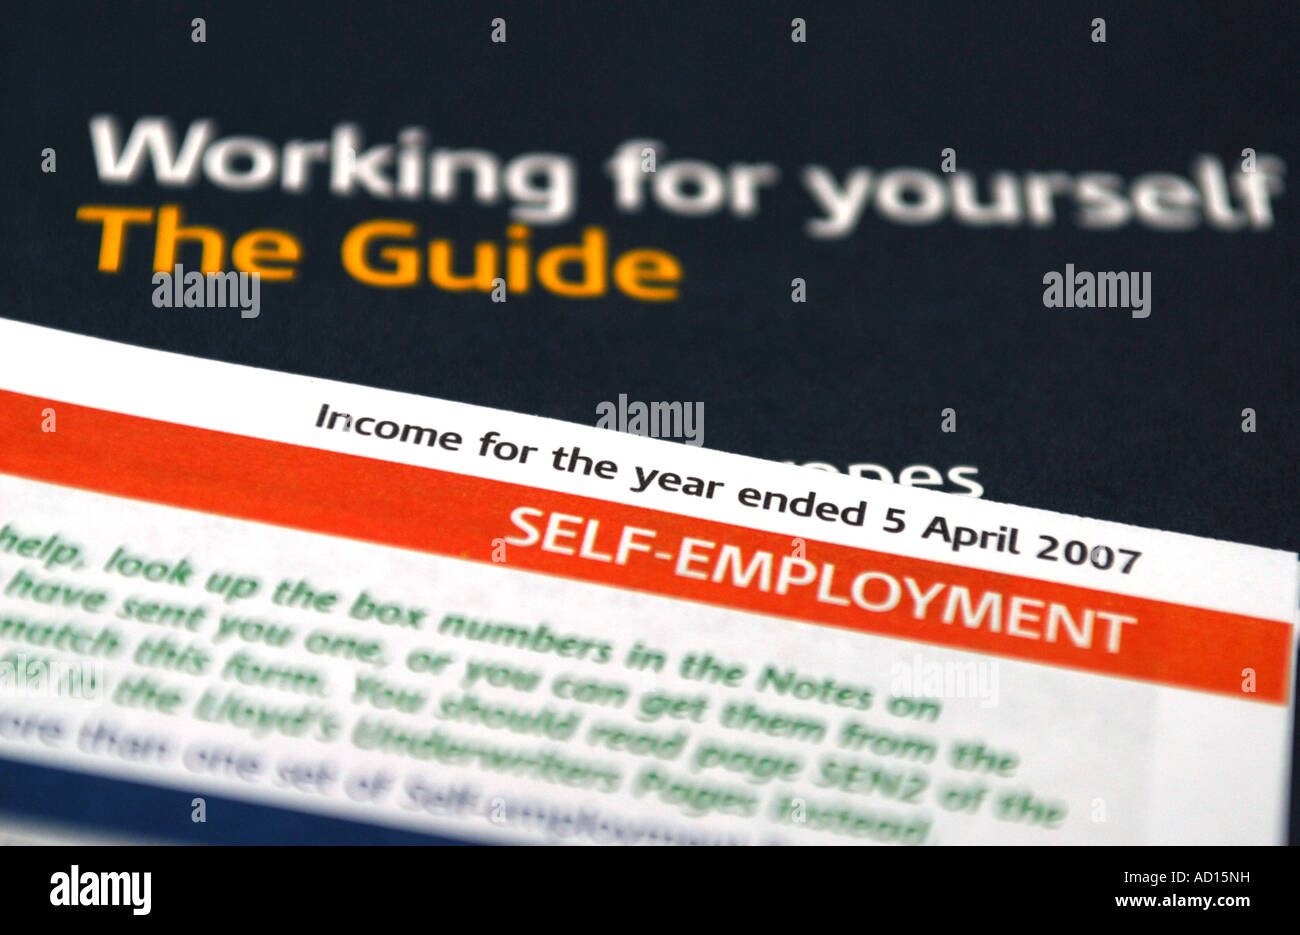 Guides And Forms For The Self Employed To Assist In The Completion